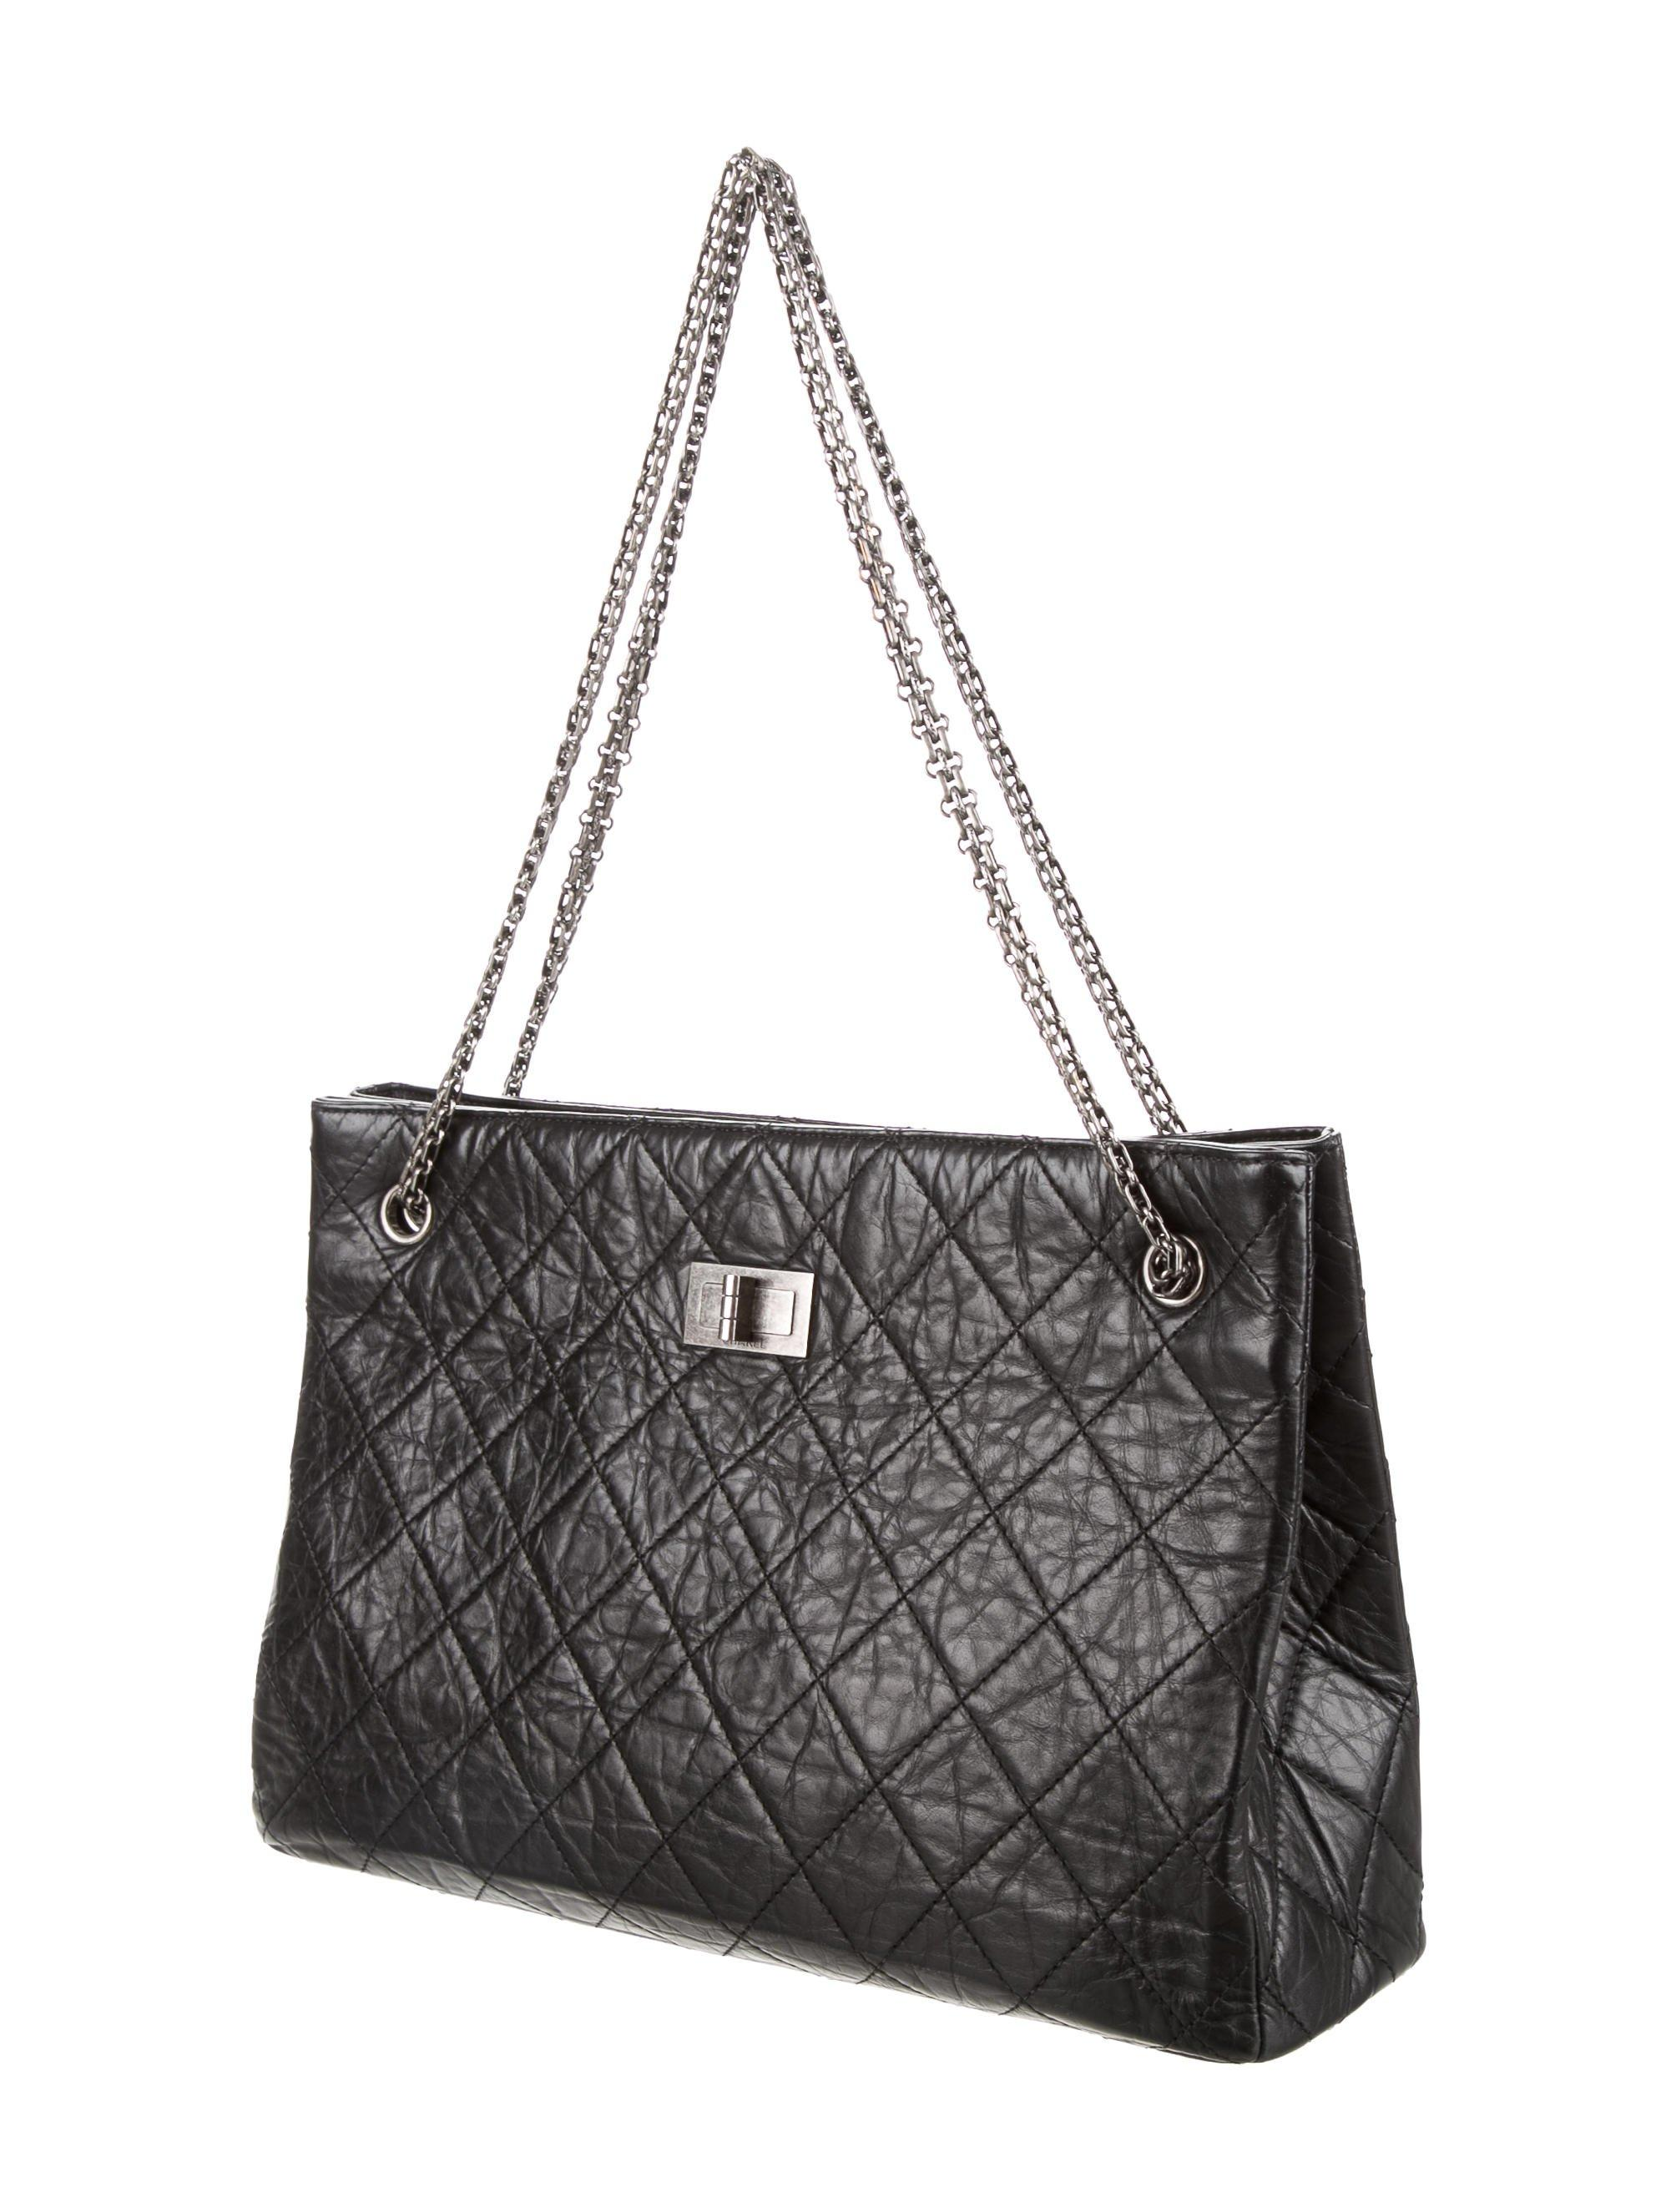 cdc710be5eaa Lyst - Chanel Aged Calfskin Reissue Tote Black in Metallic